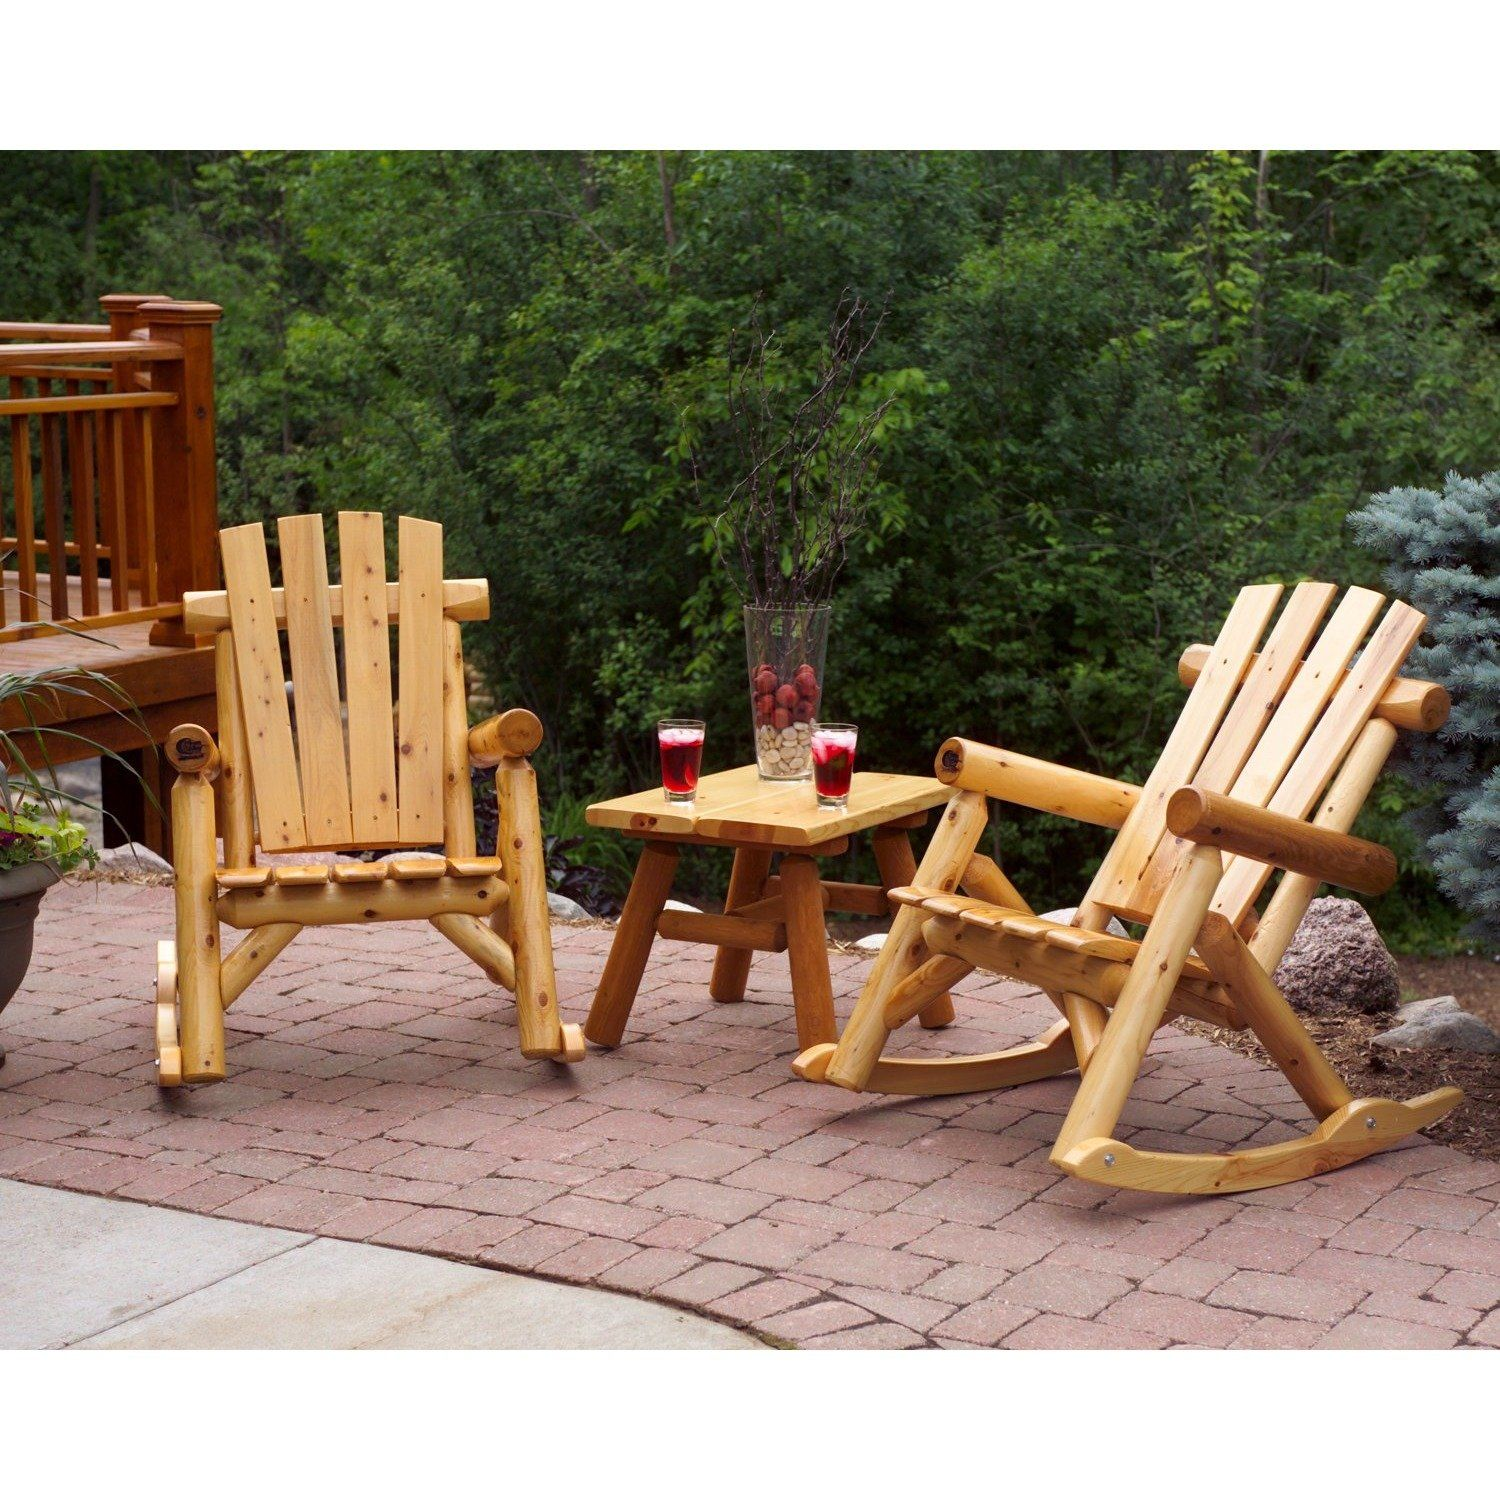 Moon Valley Rustic 2 Rockers & 1 28inch End Table Lead